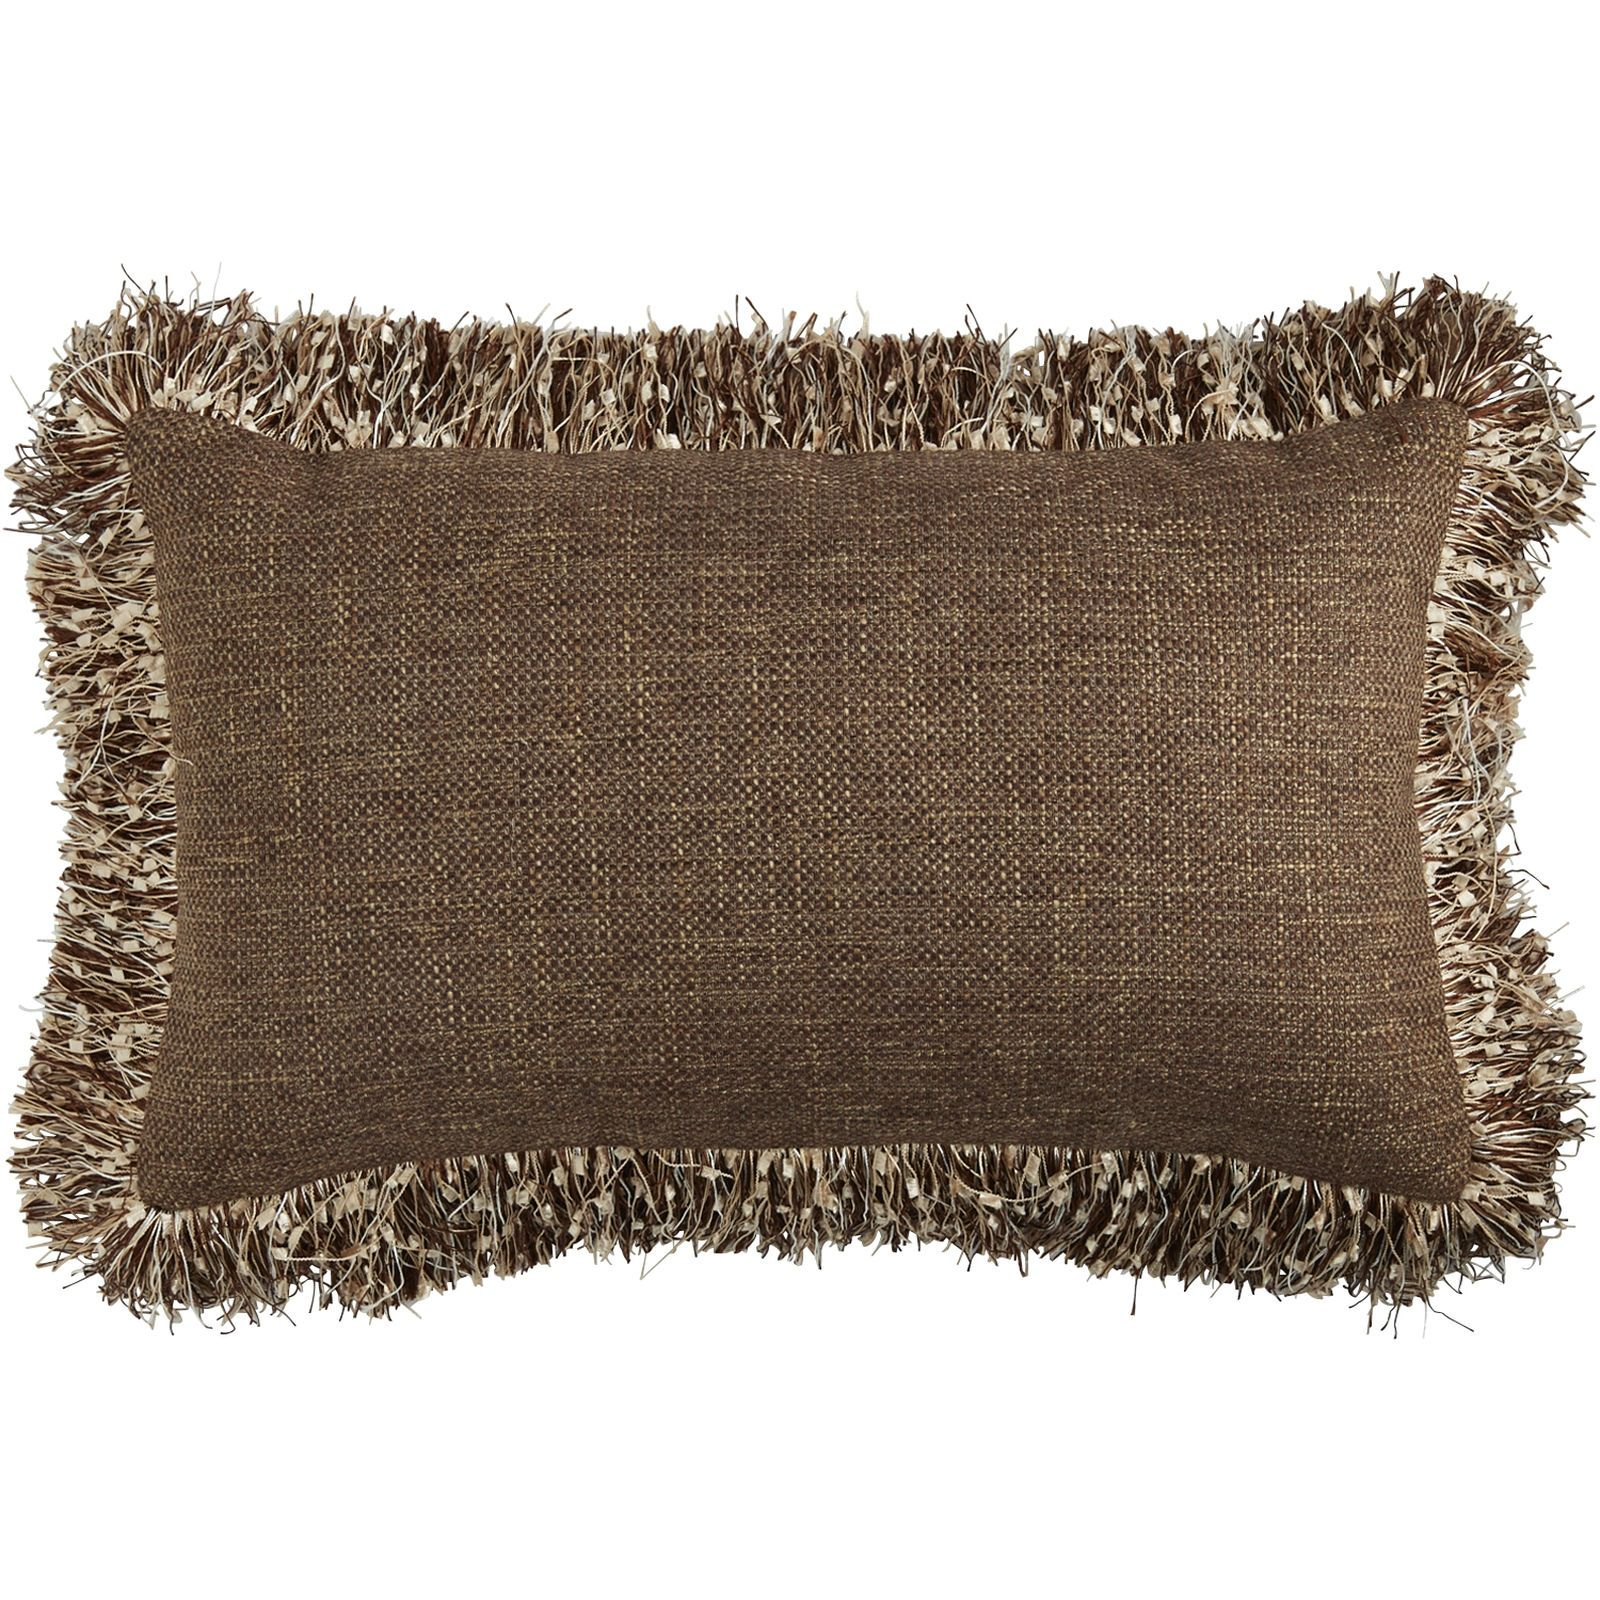 There's a party on your sofa, and our pillow is the life of it. Celebrate softness and comfort in a shimmering brown with flashy fringe. This pillow makes your sofa the perfect place to crash for a pizza party, movie marathon or cozy catnap.